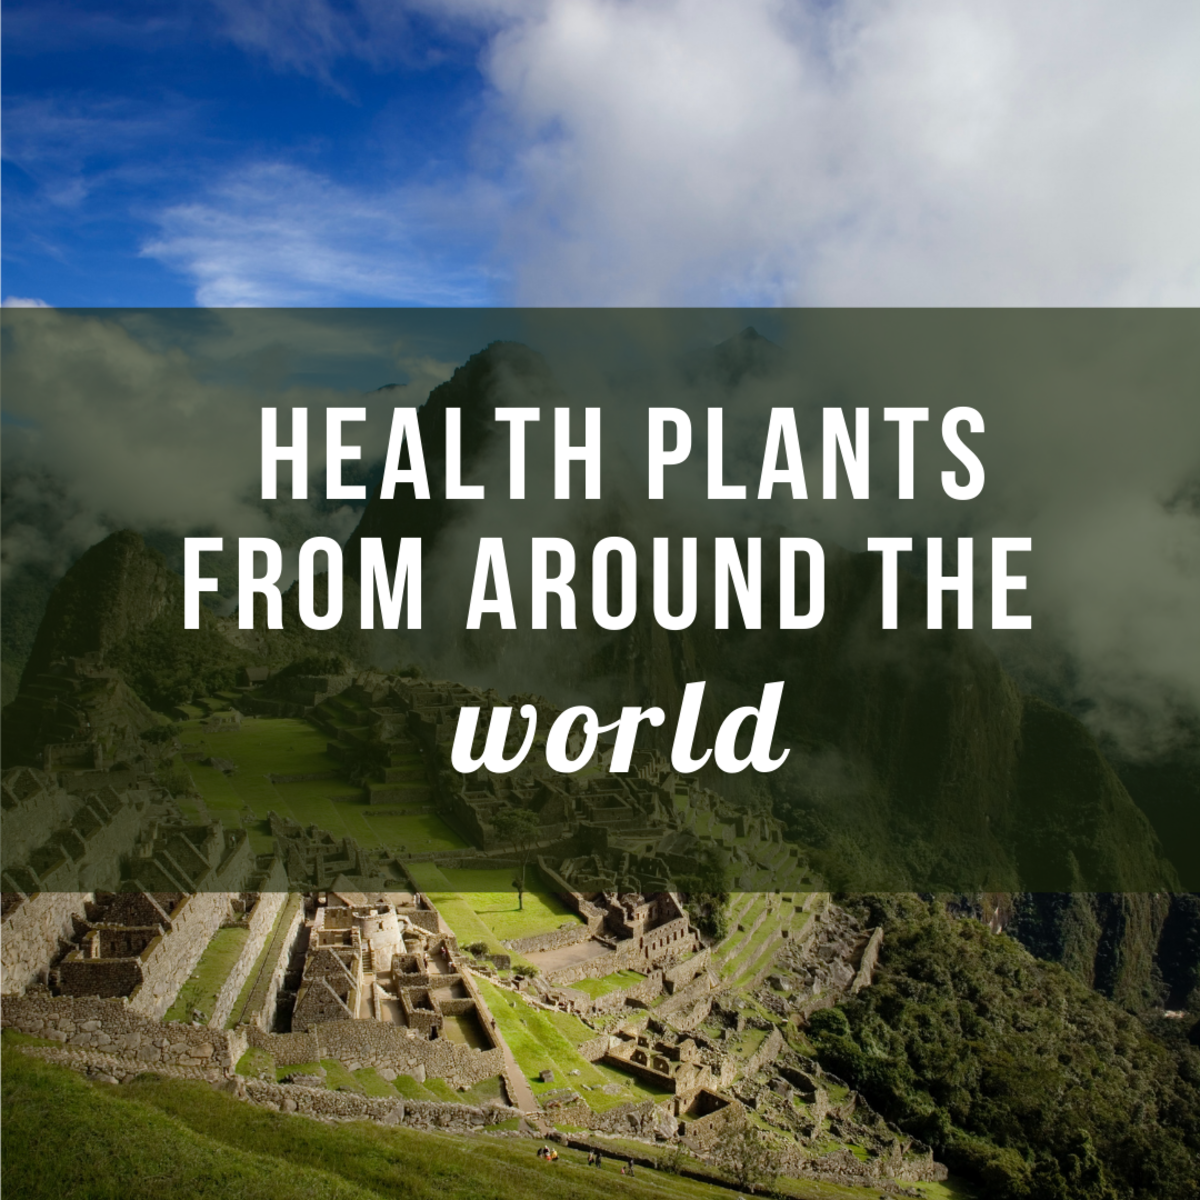 Healthy Plants From Around the World